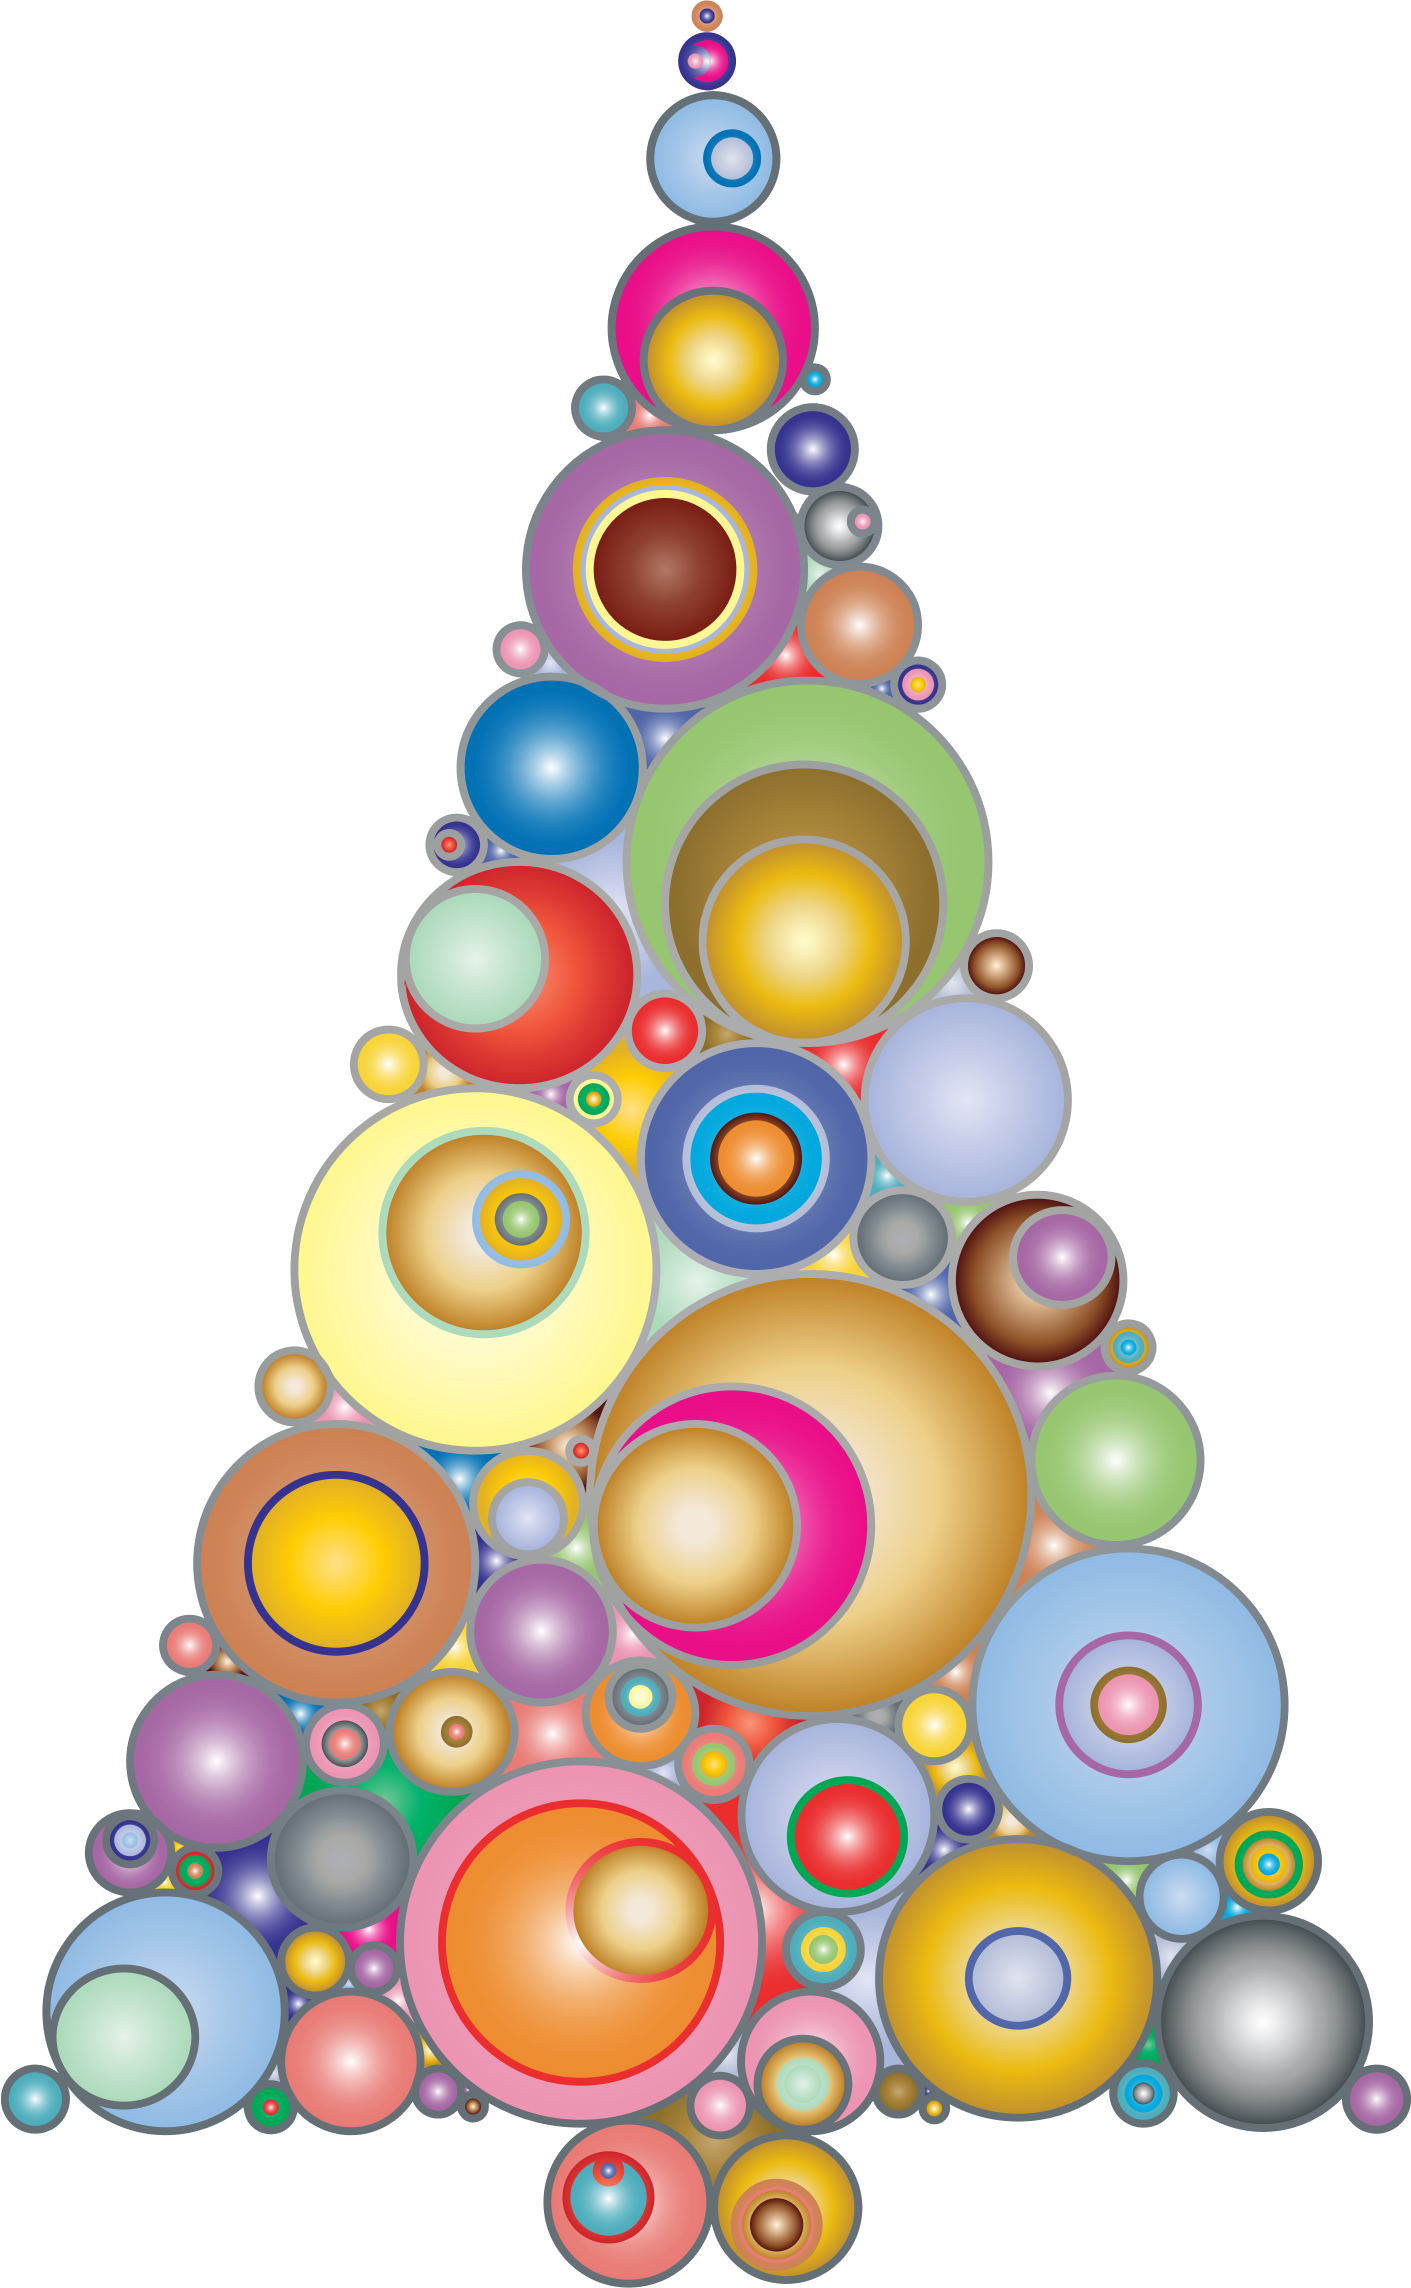 https://openclipart.org/image/2400px/svg_to_png/236785/Colorful-Abstract-Circles-Christmas-Tree-3.png